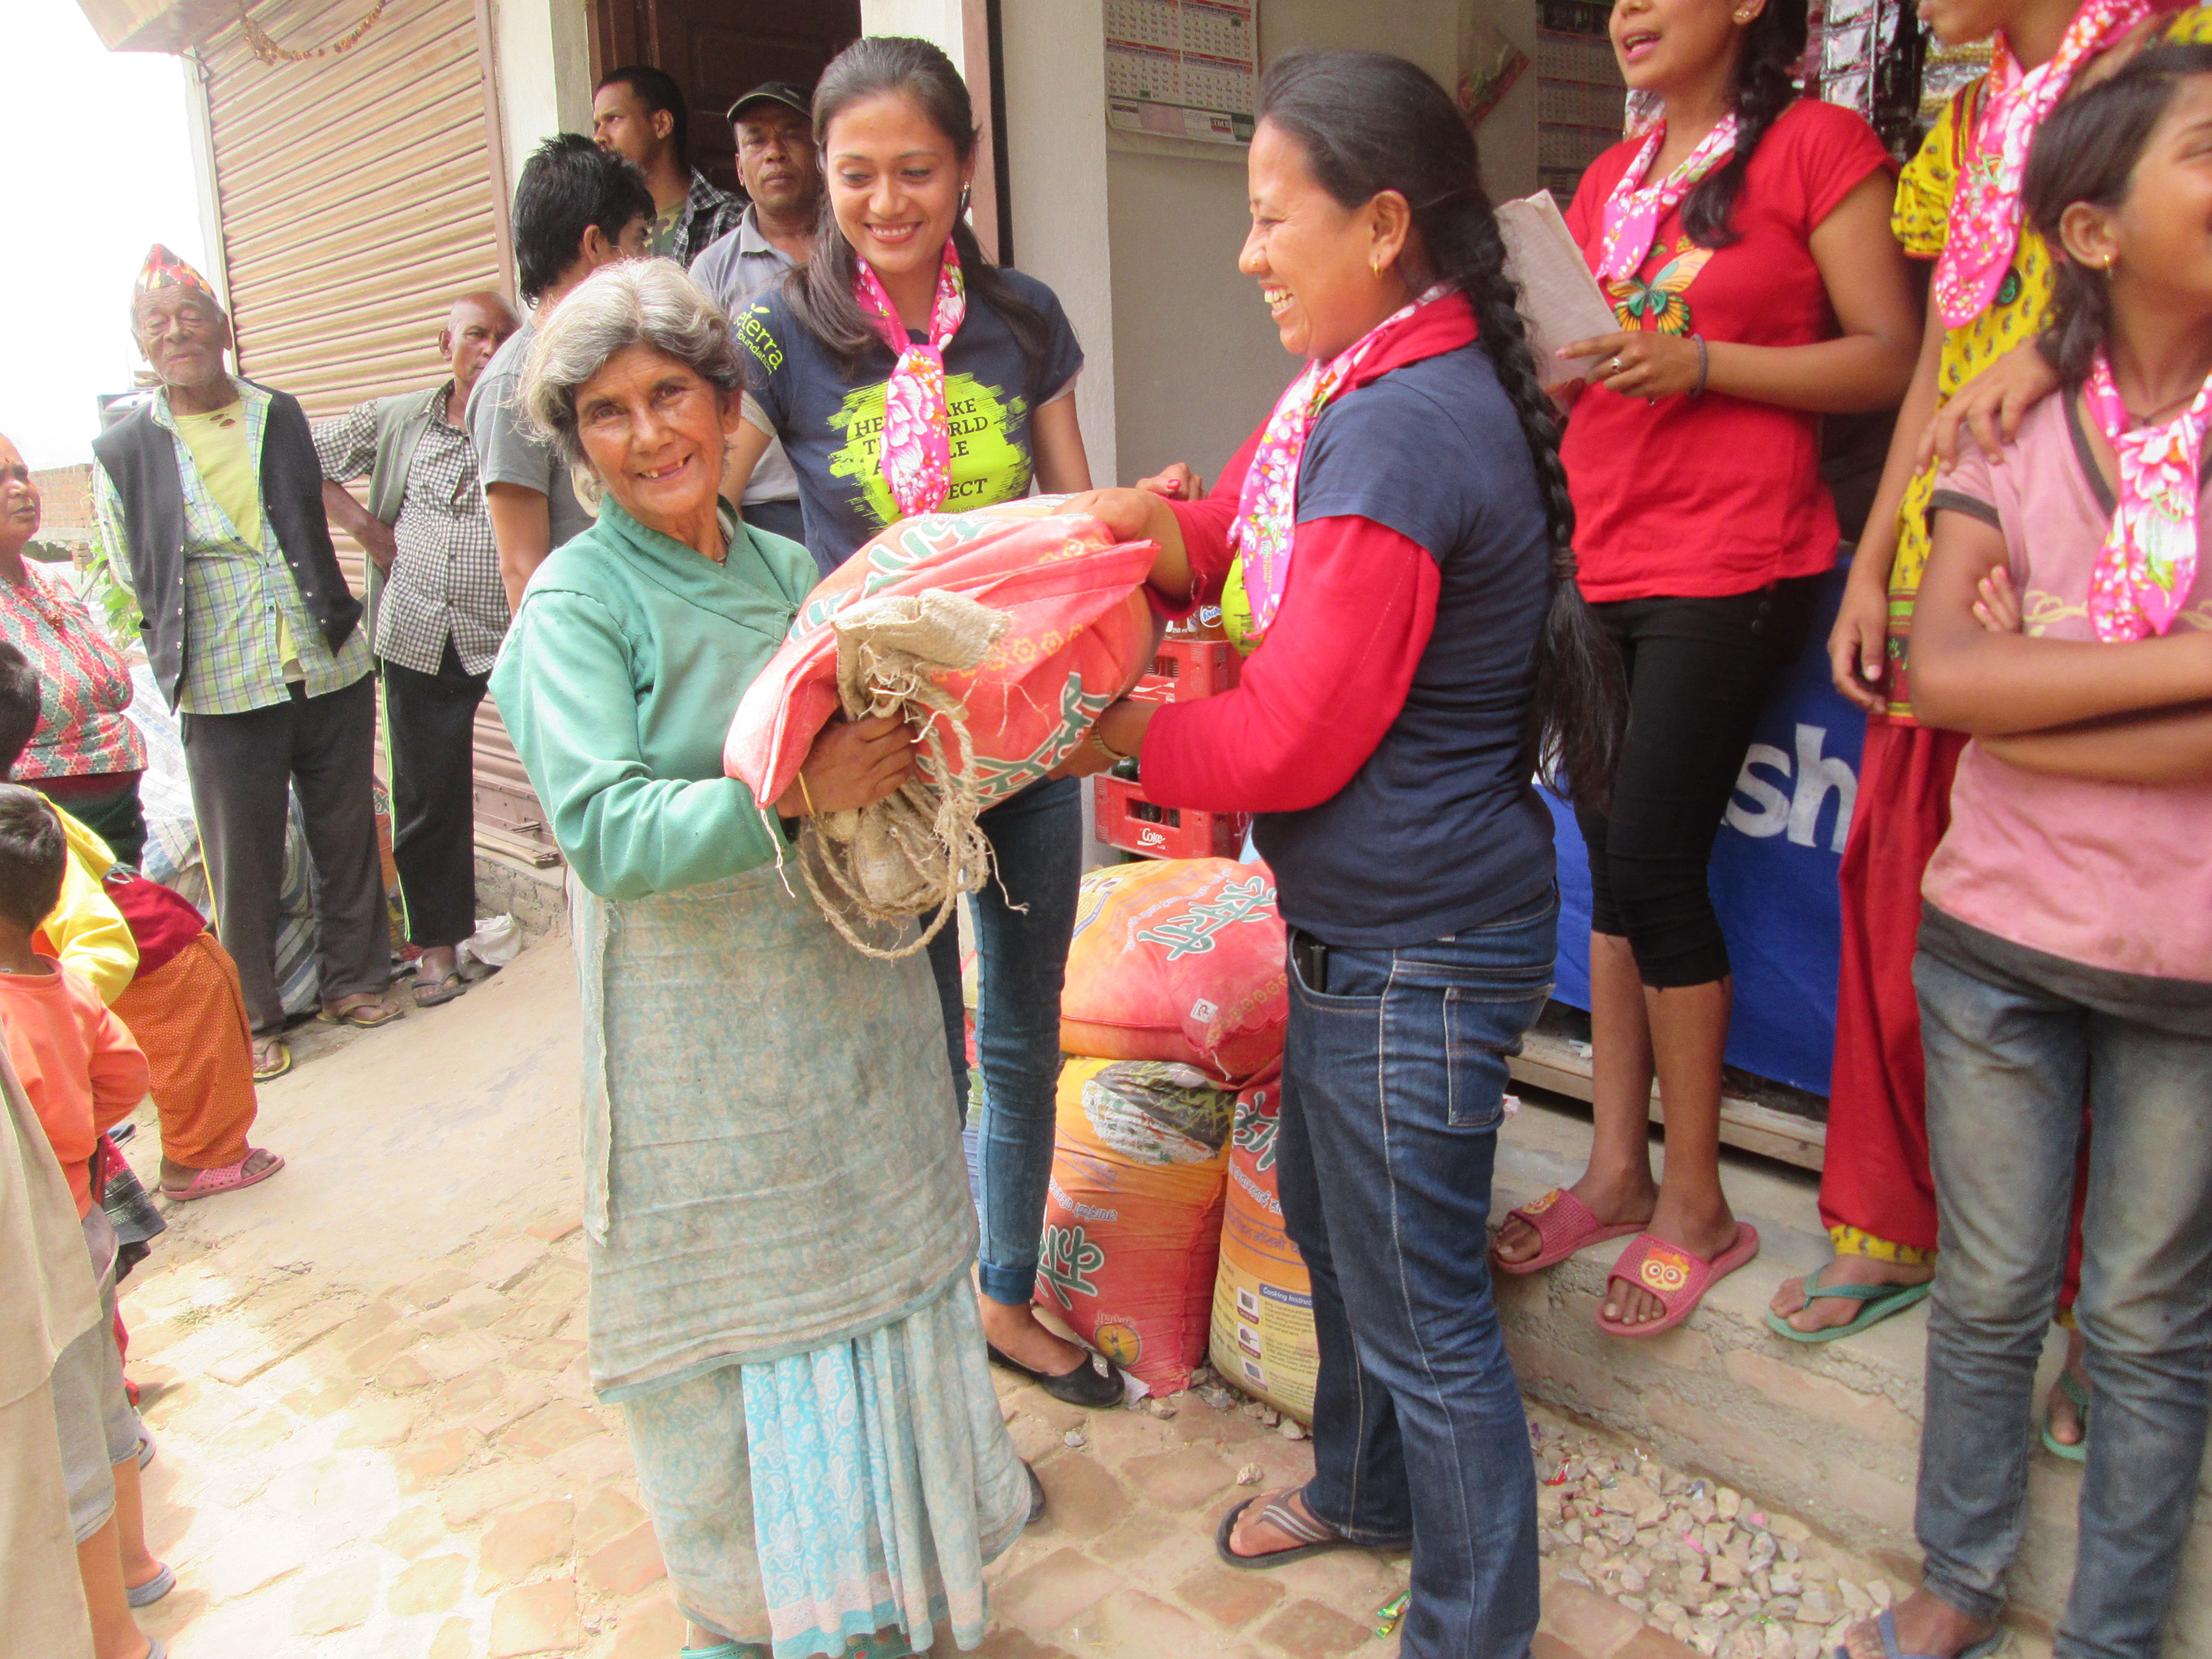 Indira and Manisha from Sisterhood of Survivors handing out bags of rice in Nuwakot just two weeks after the earthquake.